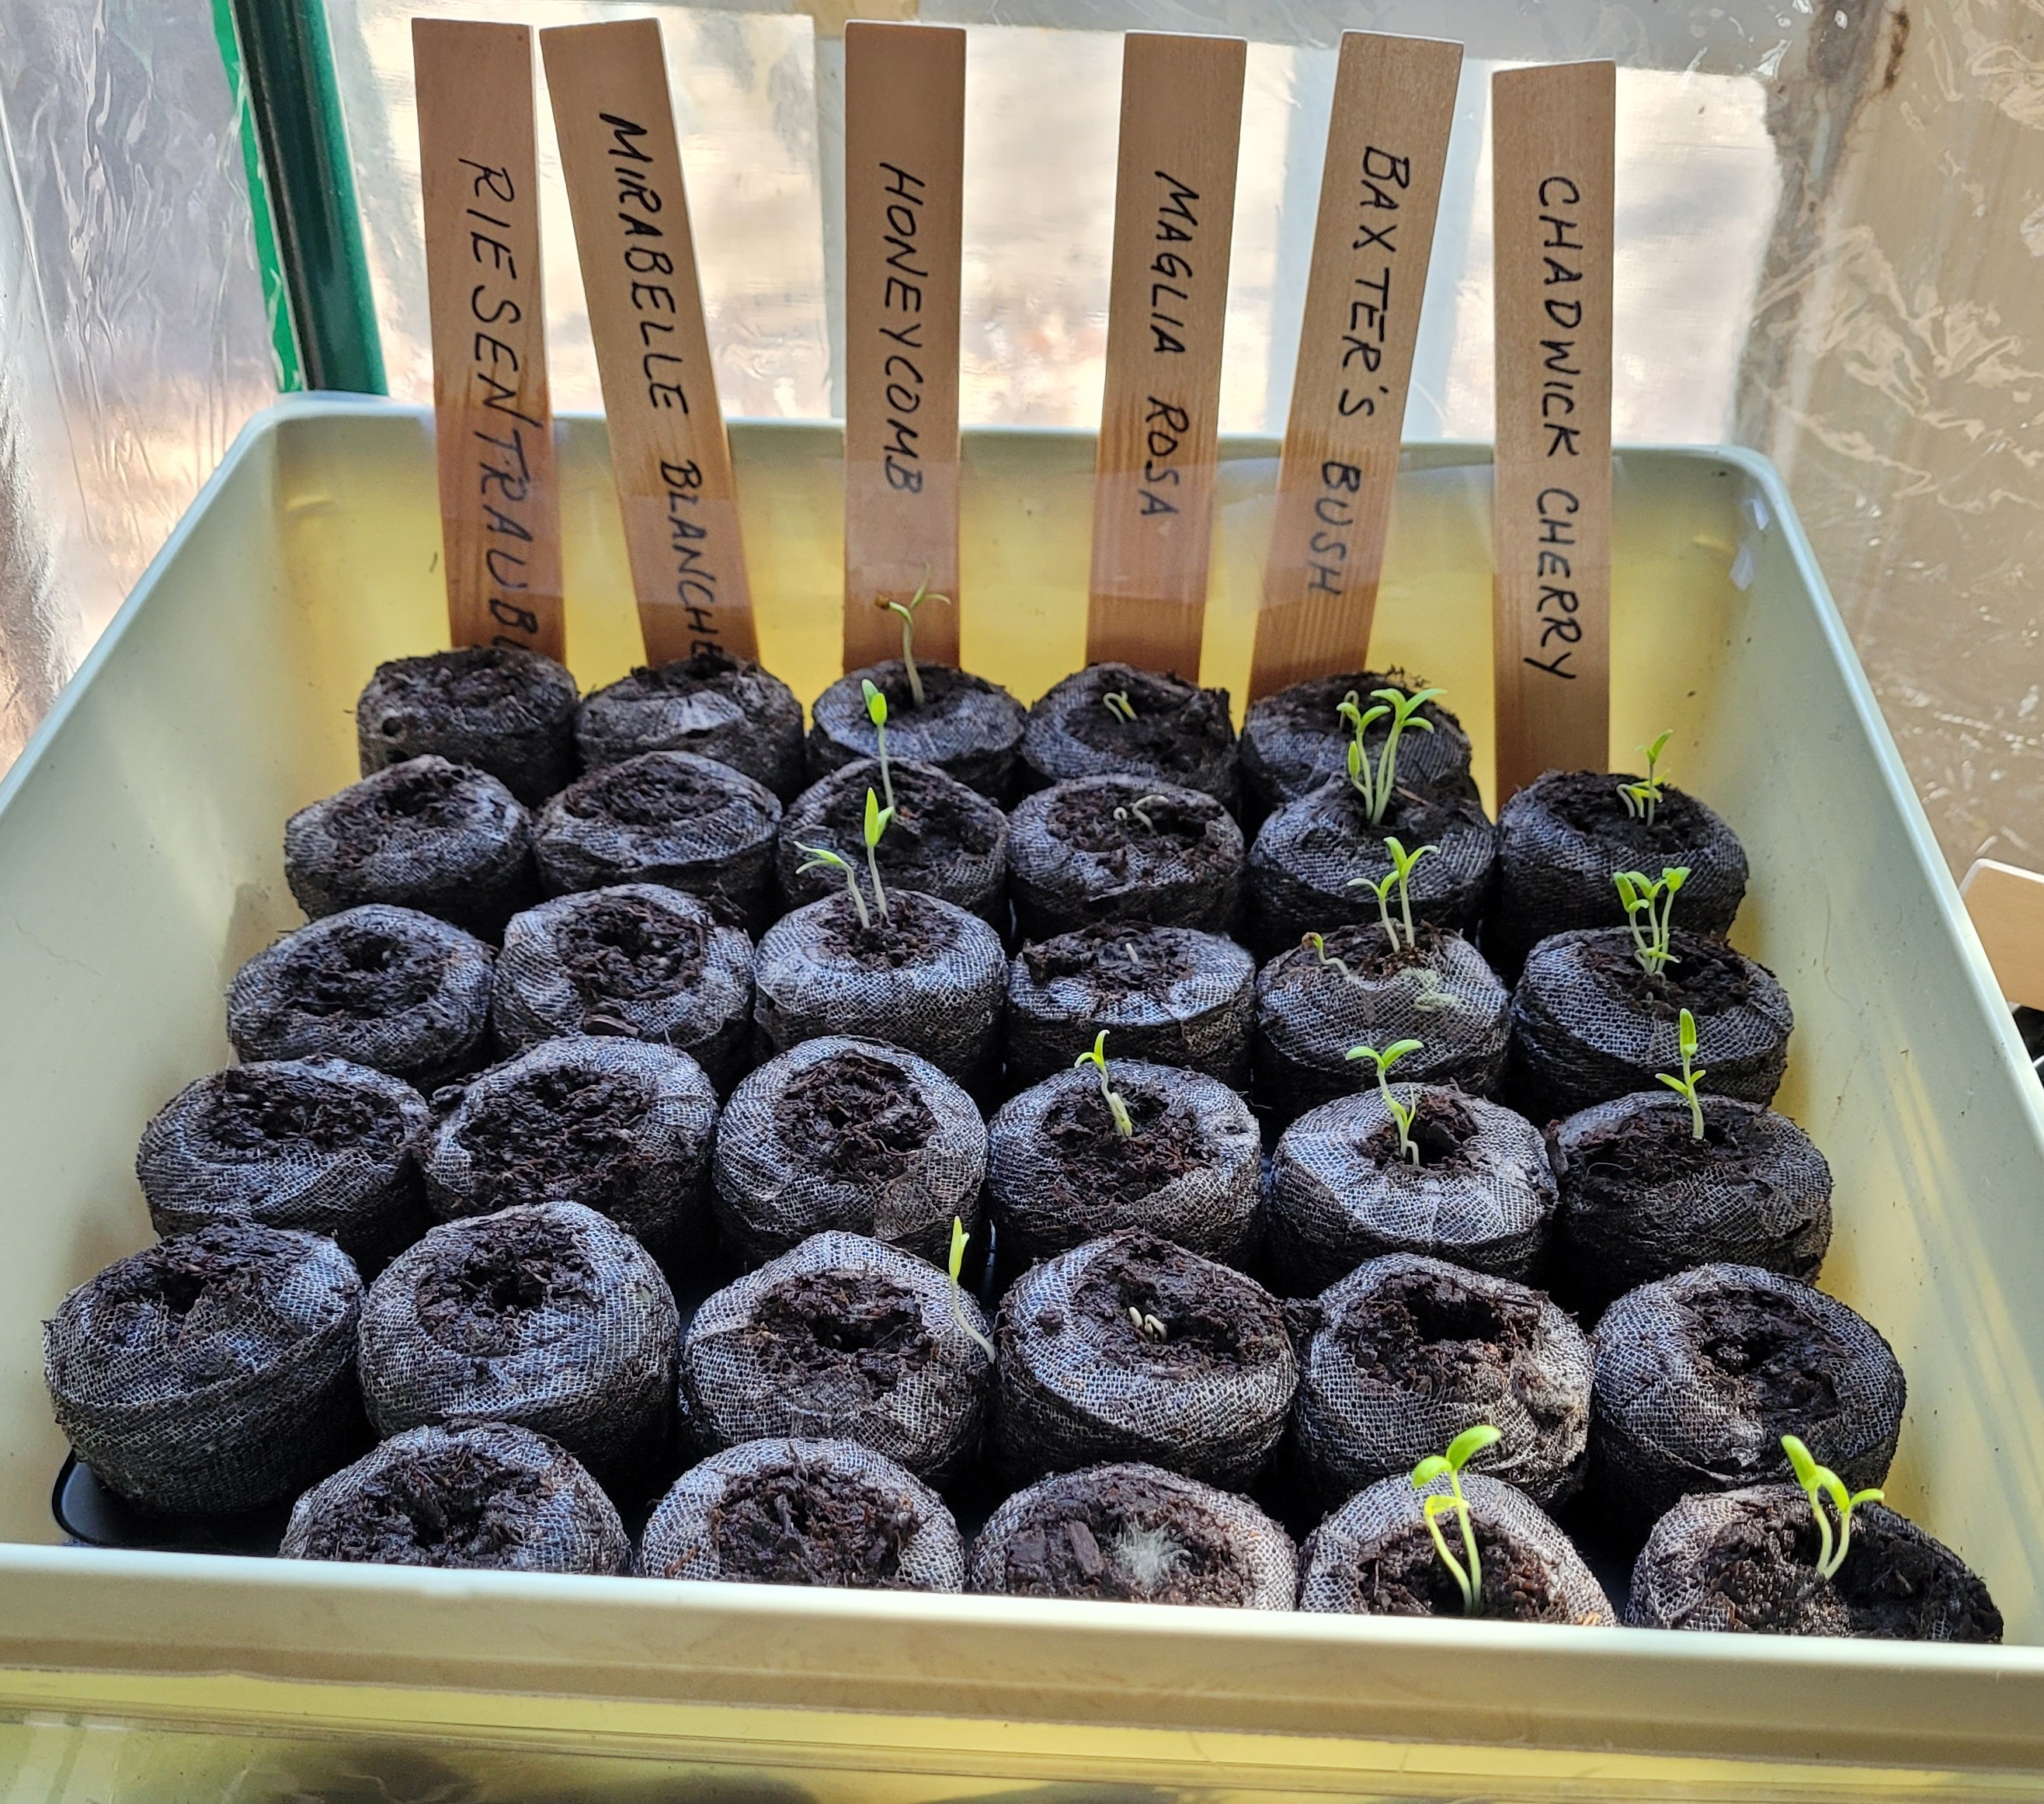 Flat of seedlings that have sprouted